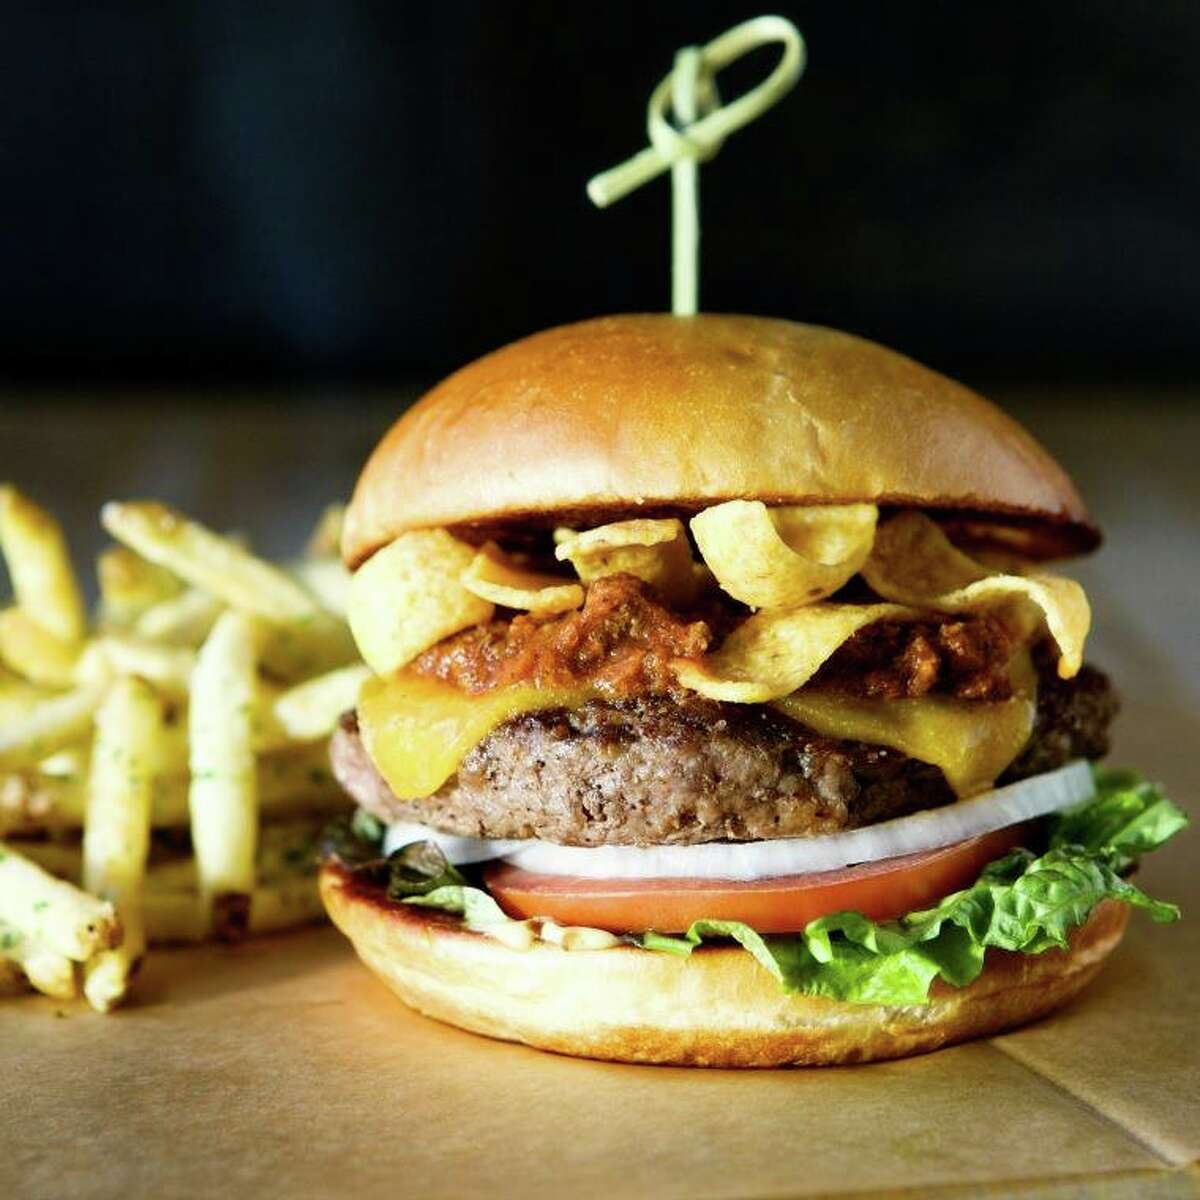 HOPDODDY BURGER BAR The Austin-based chain will open this spring in the River Oaks District, 4444 Westheimer. The burgers are ground inhouse using only humanely raised cows.